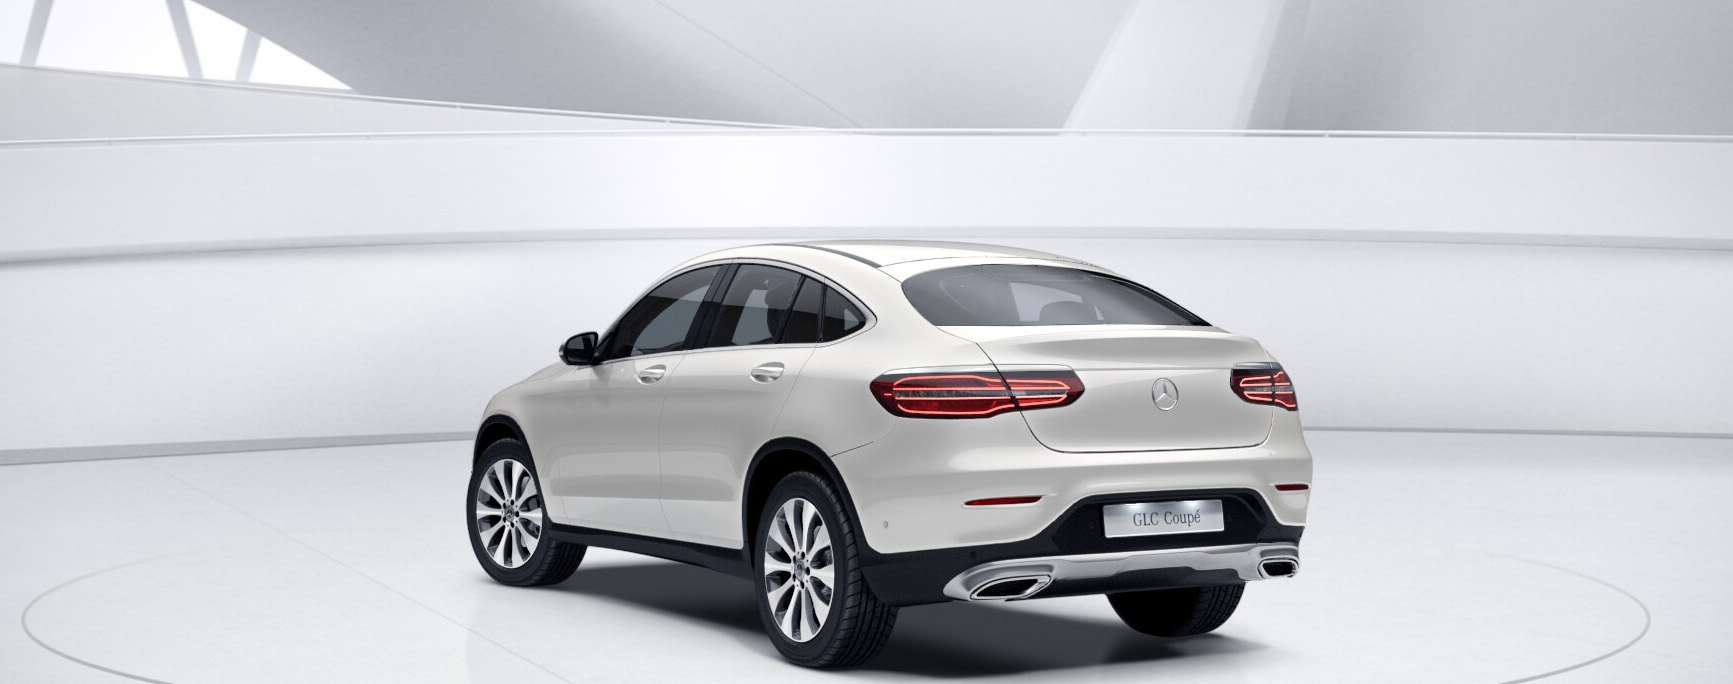 Mercedes-Benz GLC Coupe фото 2